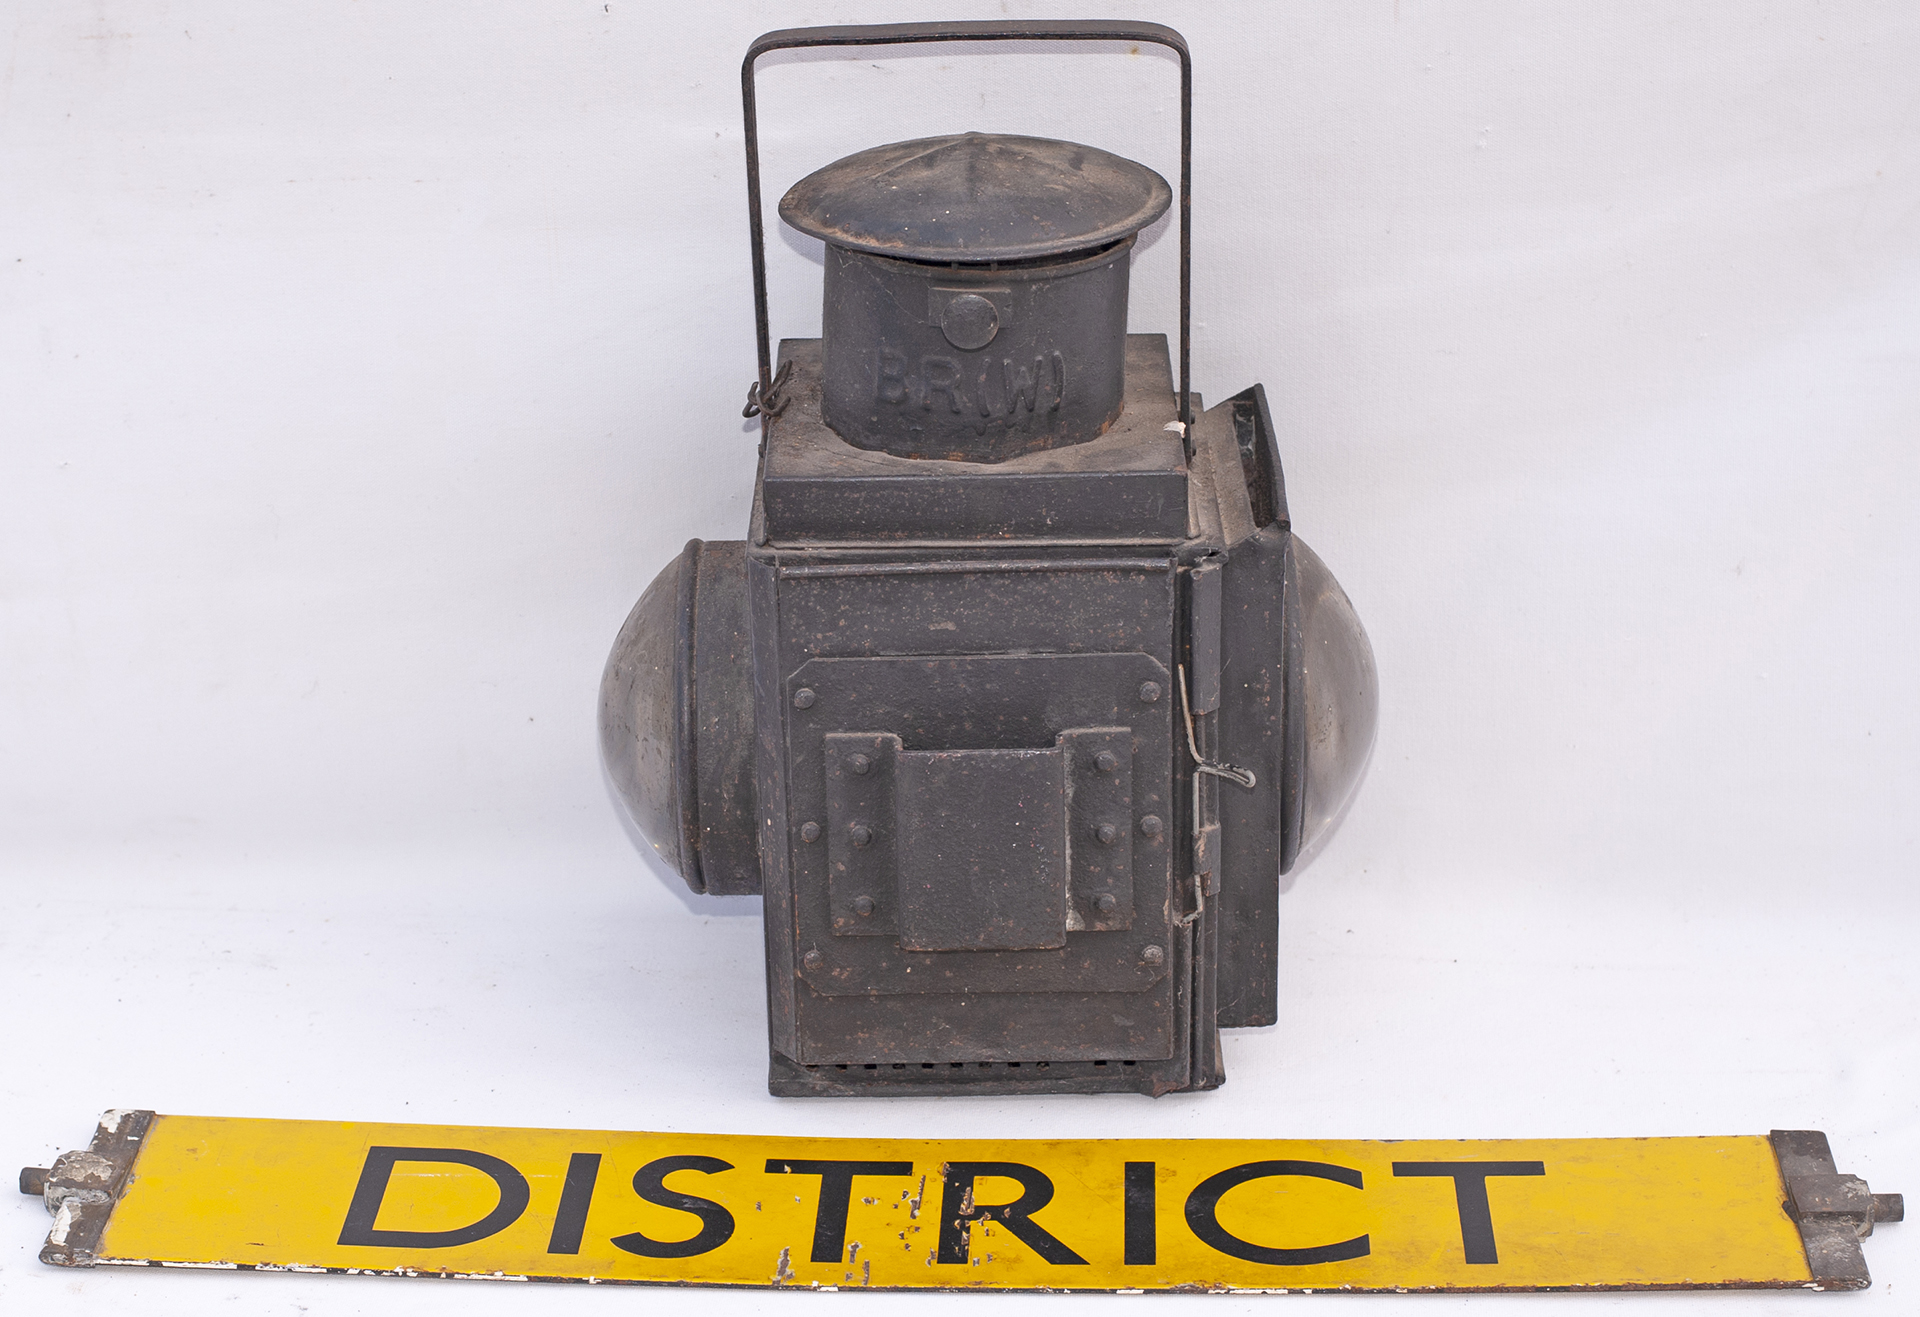 BR(W) GWR pattern Guards Van Side Lamp, no vessel. Together with an Underground enamel DISTRICT